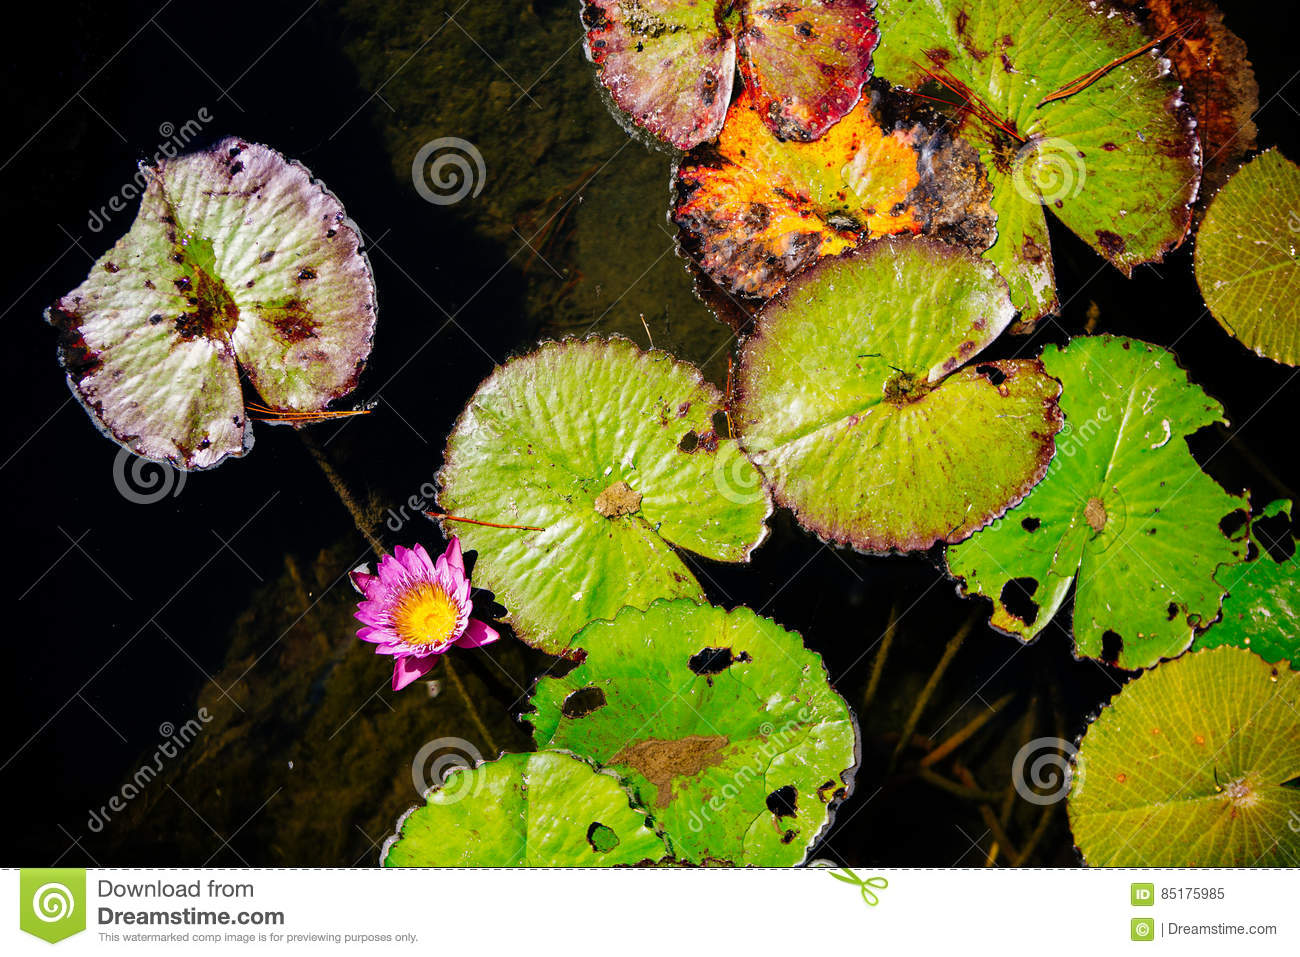 Dying lily pads in a pond with insect damage stock image image of dying lily pads in a pond with insect damage turning yellow and brown as decay sets in showing the life cycle of plants with a single pink lotus flower izmirmasajfo